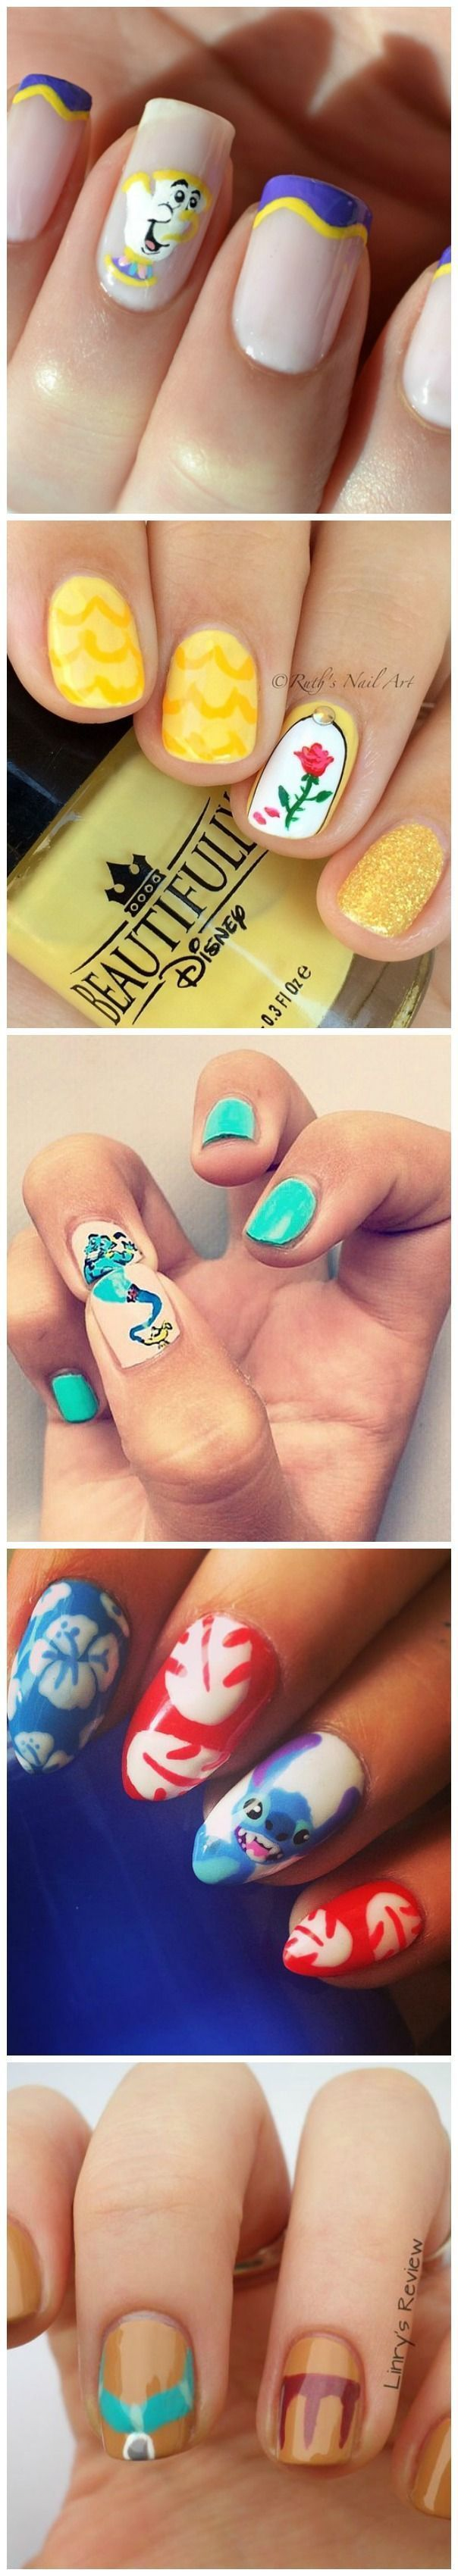 These 21 Disney Nail Art Ideas Will Make You Want To Get A Magical ...